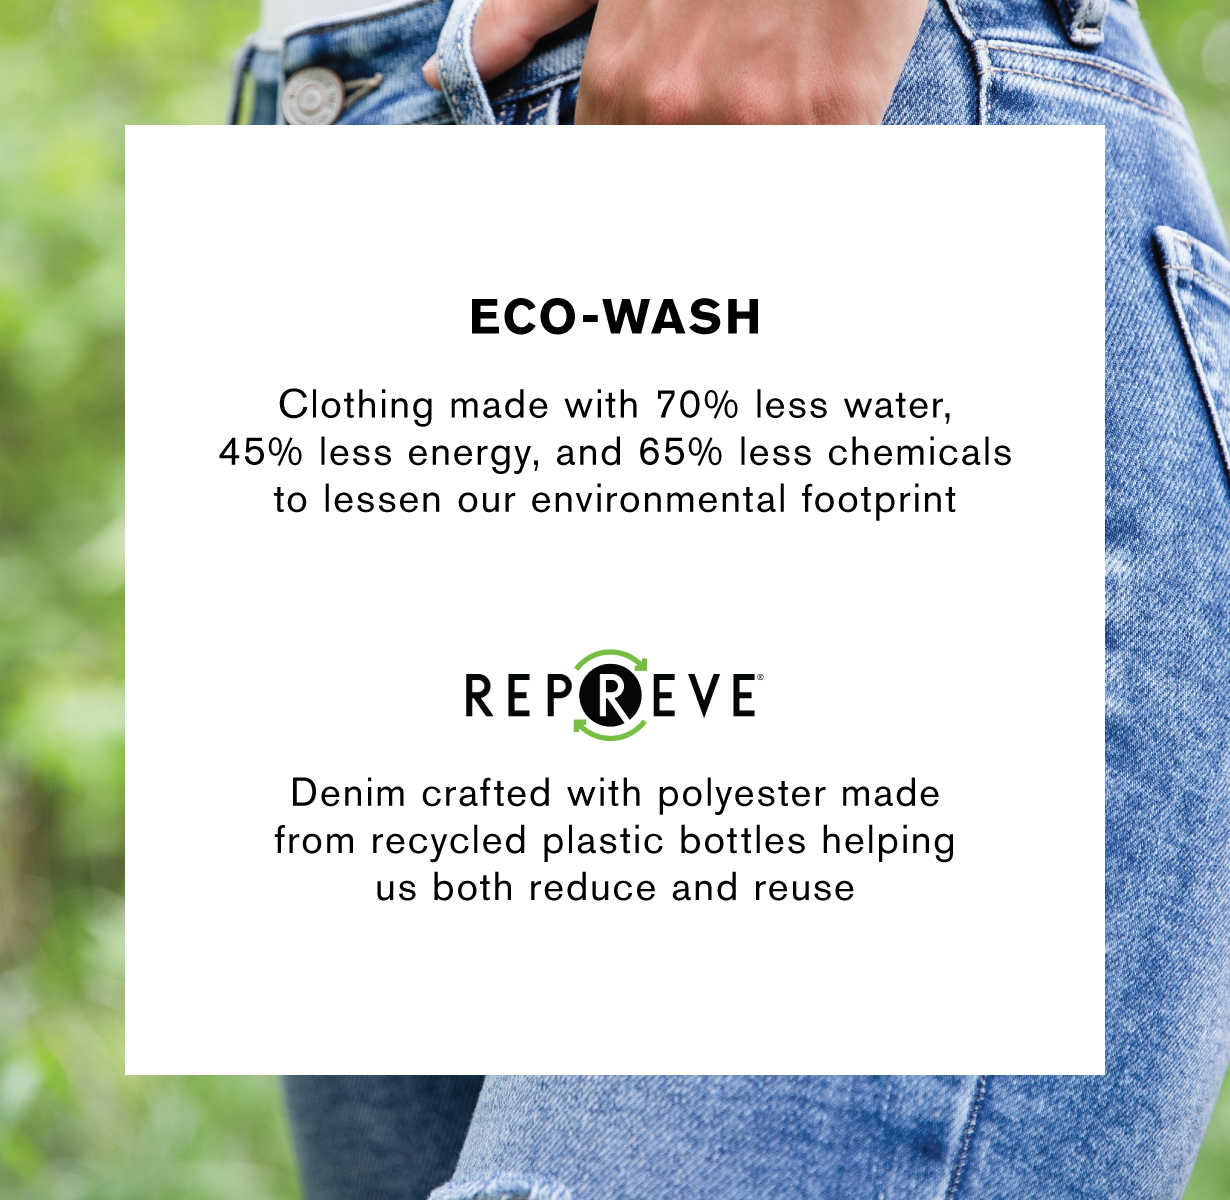 Eco-wash. Clothing made with 70% less water, 45% less energy, and 65% less chemicals to lessen our environmental footprint. Repreve. Denim crafted with polyester made from recycled plastic bottles helping us both reduce and reuse.